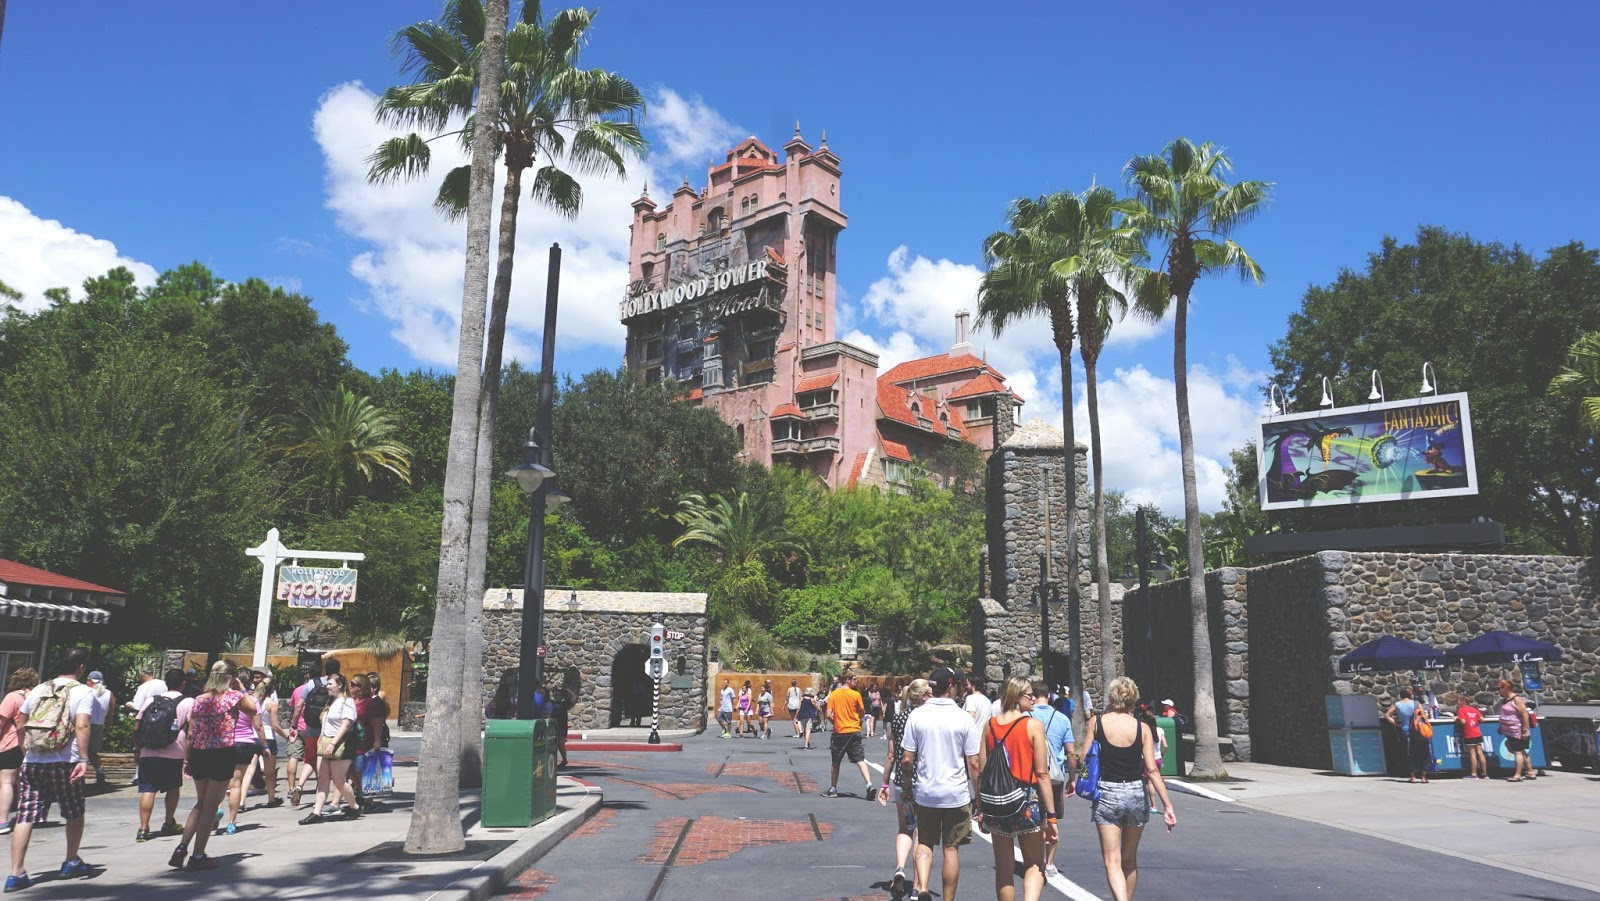 The Tower of Terror at Hollywood Studios in Disney World, Florida